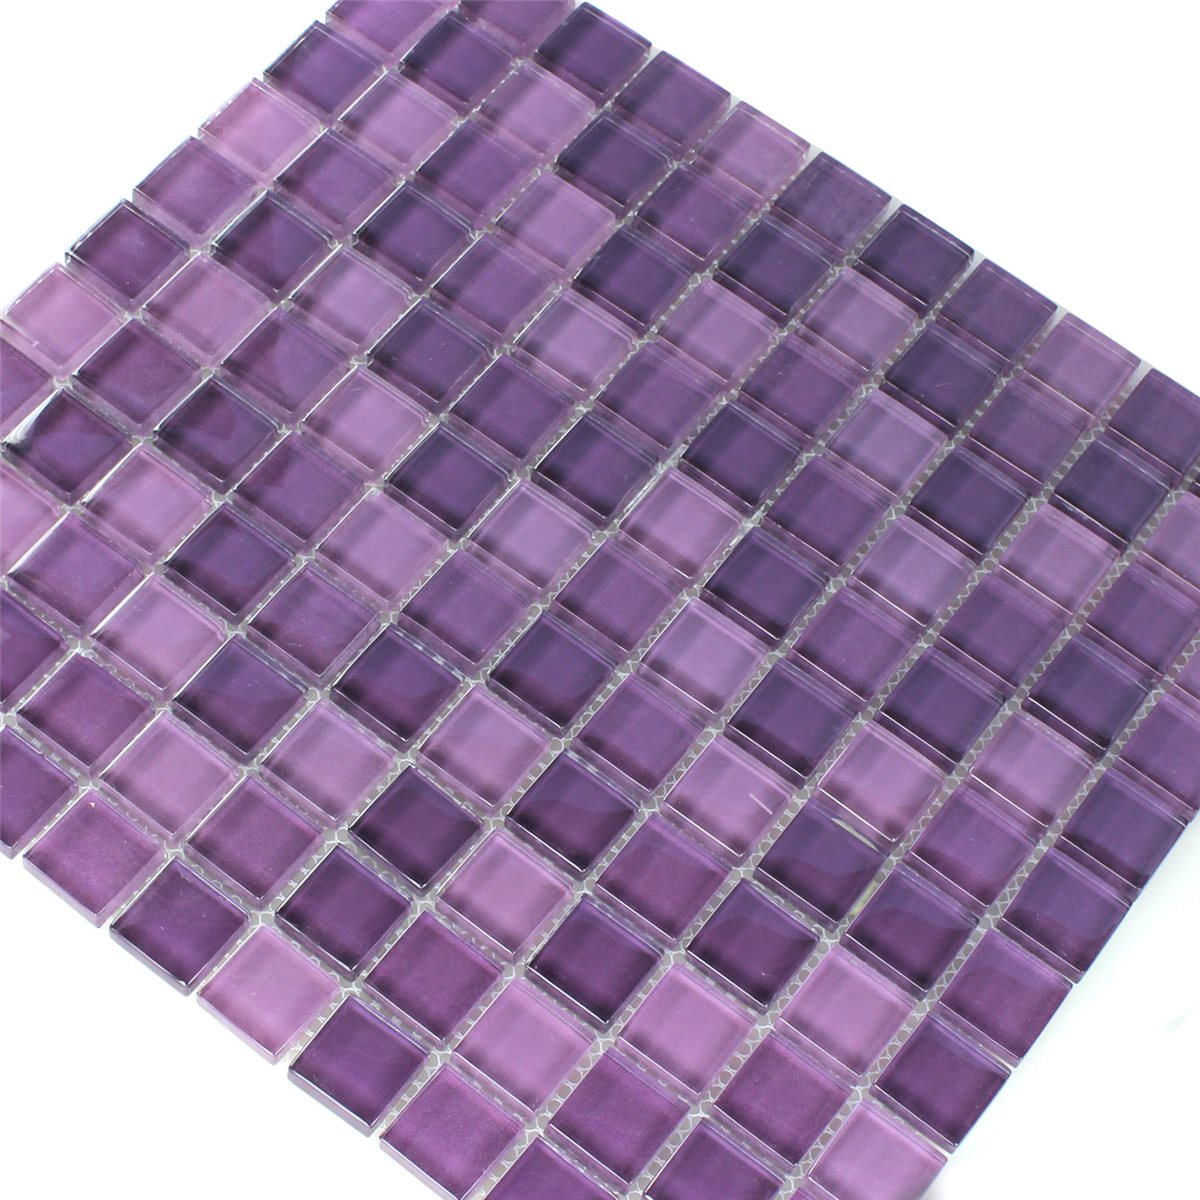 Crystal Glass Mosaic Tiles Purple Mix Www Mosafil Co Uk